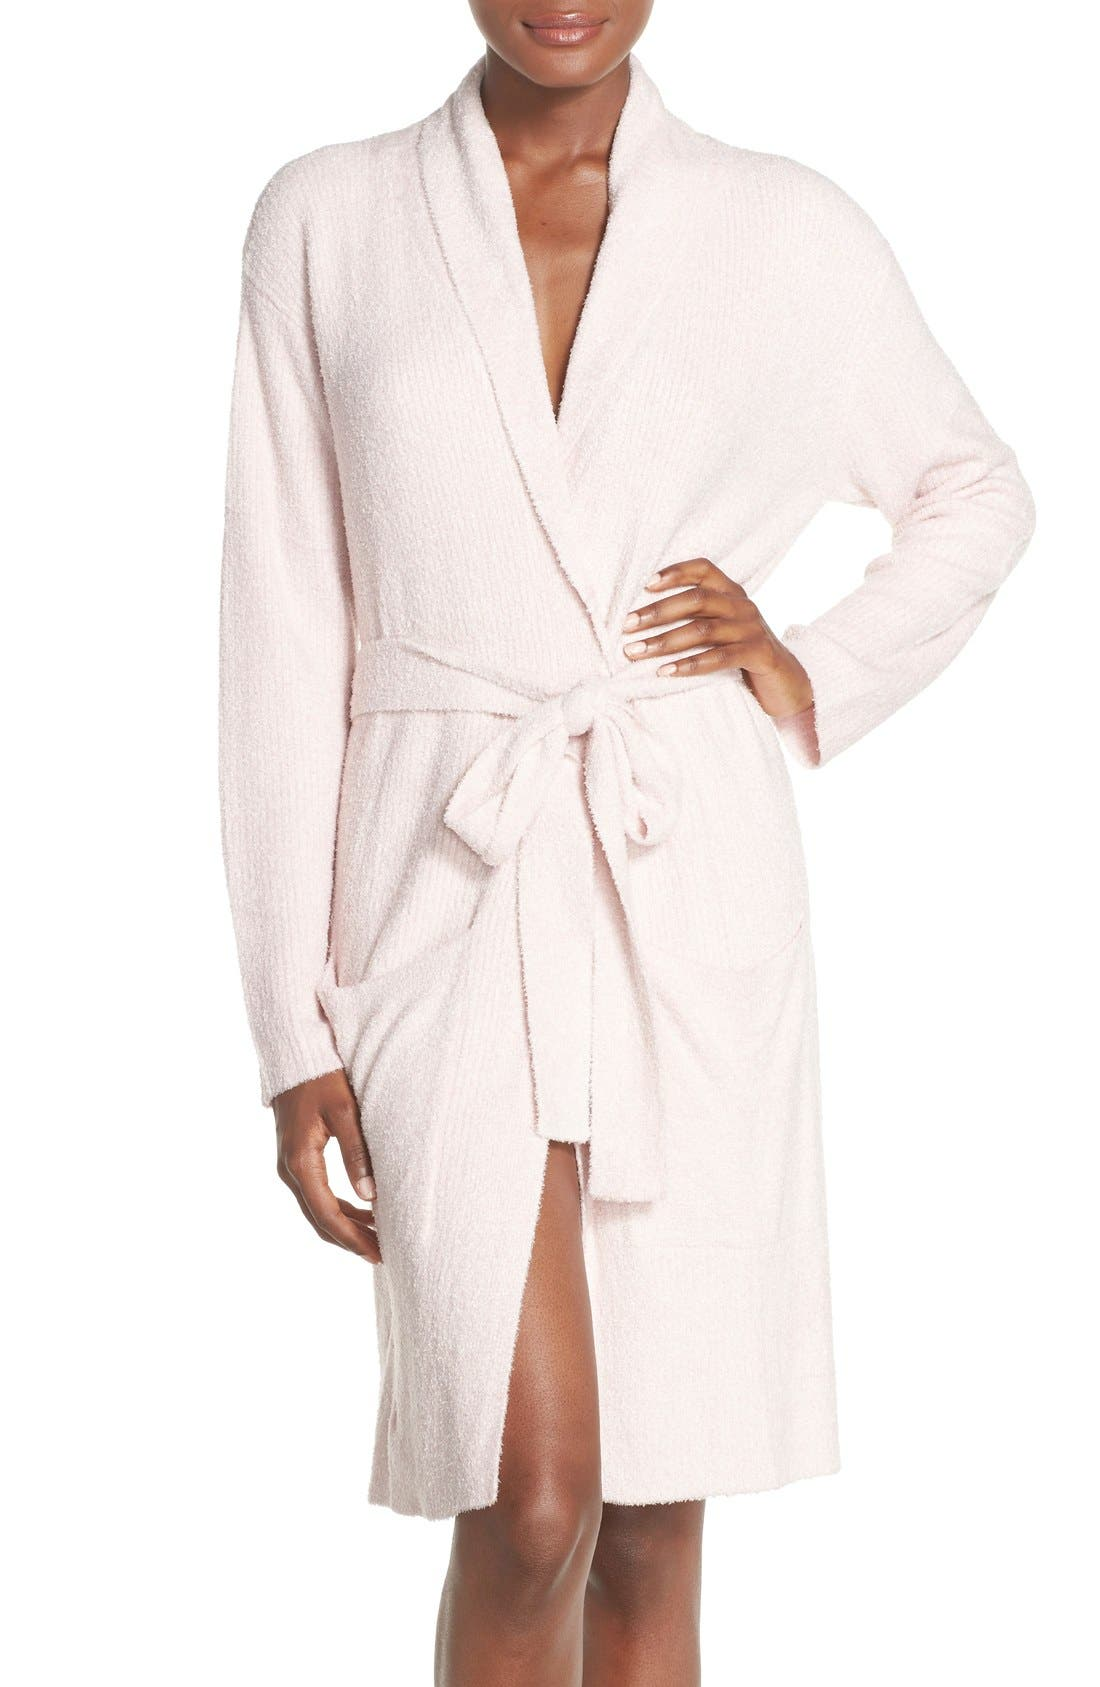 Alternate Image 1 Selected - Barefoot Dreams CozyChic Lite® Short Robe